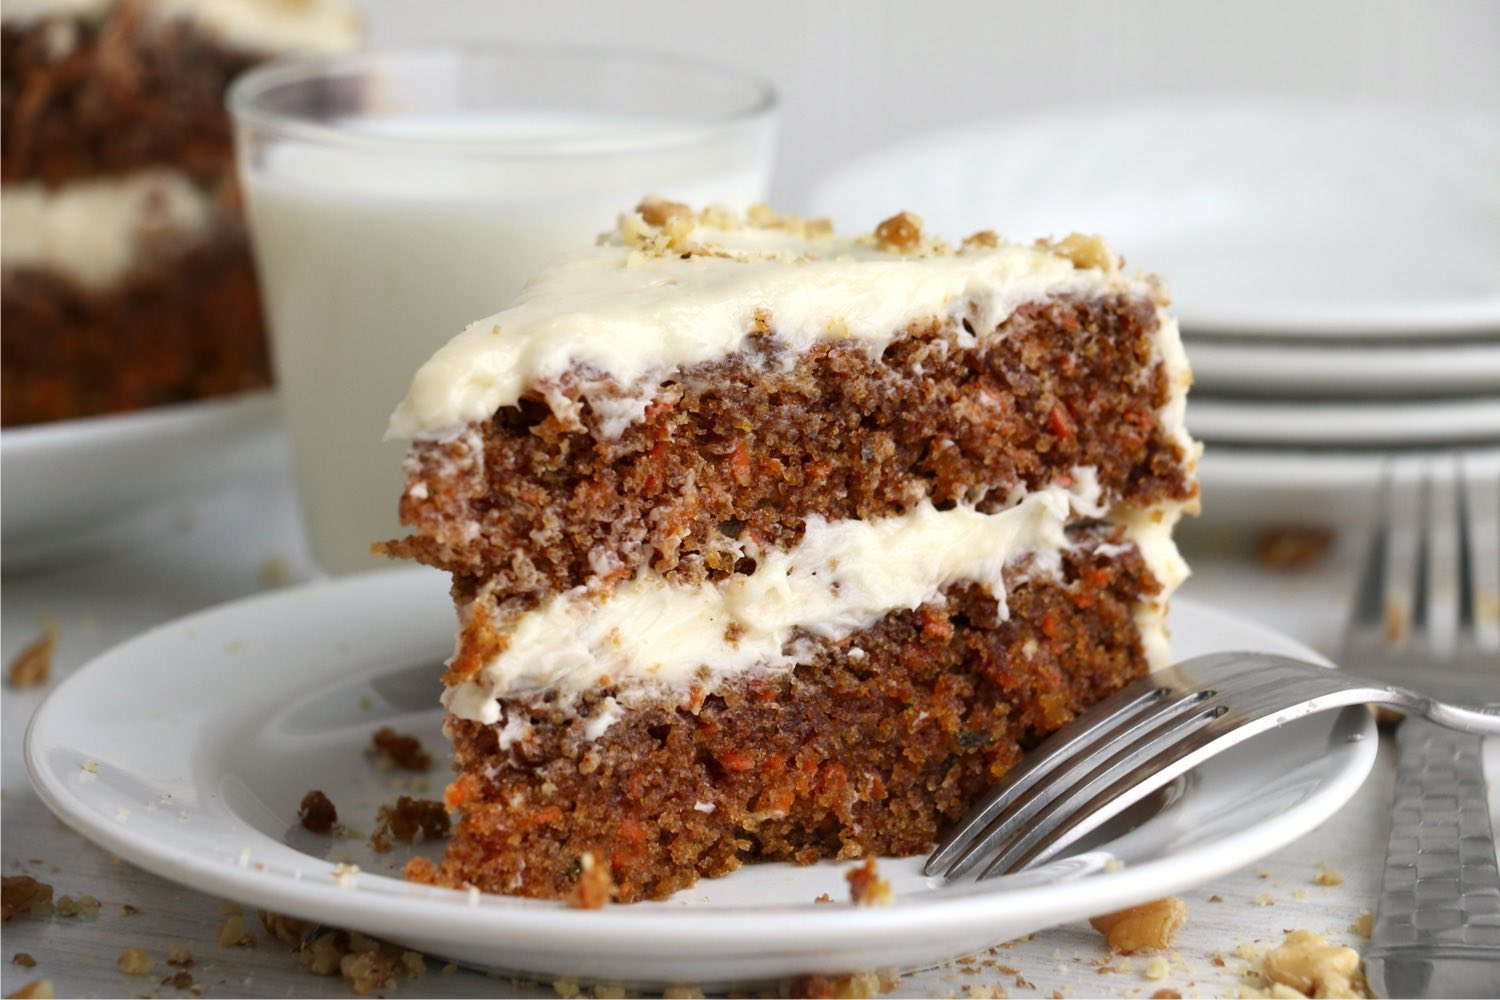 layered carrot cake on a plate with fork